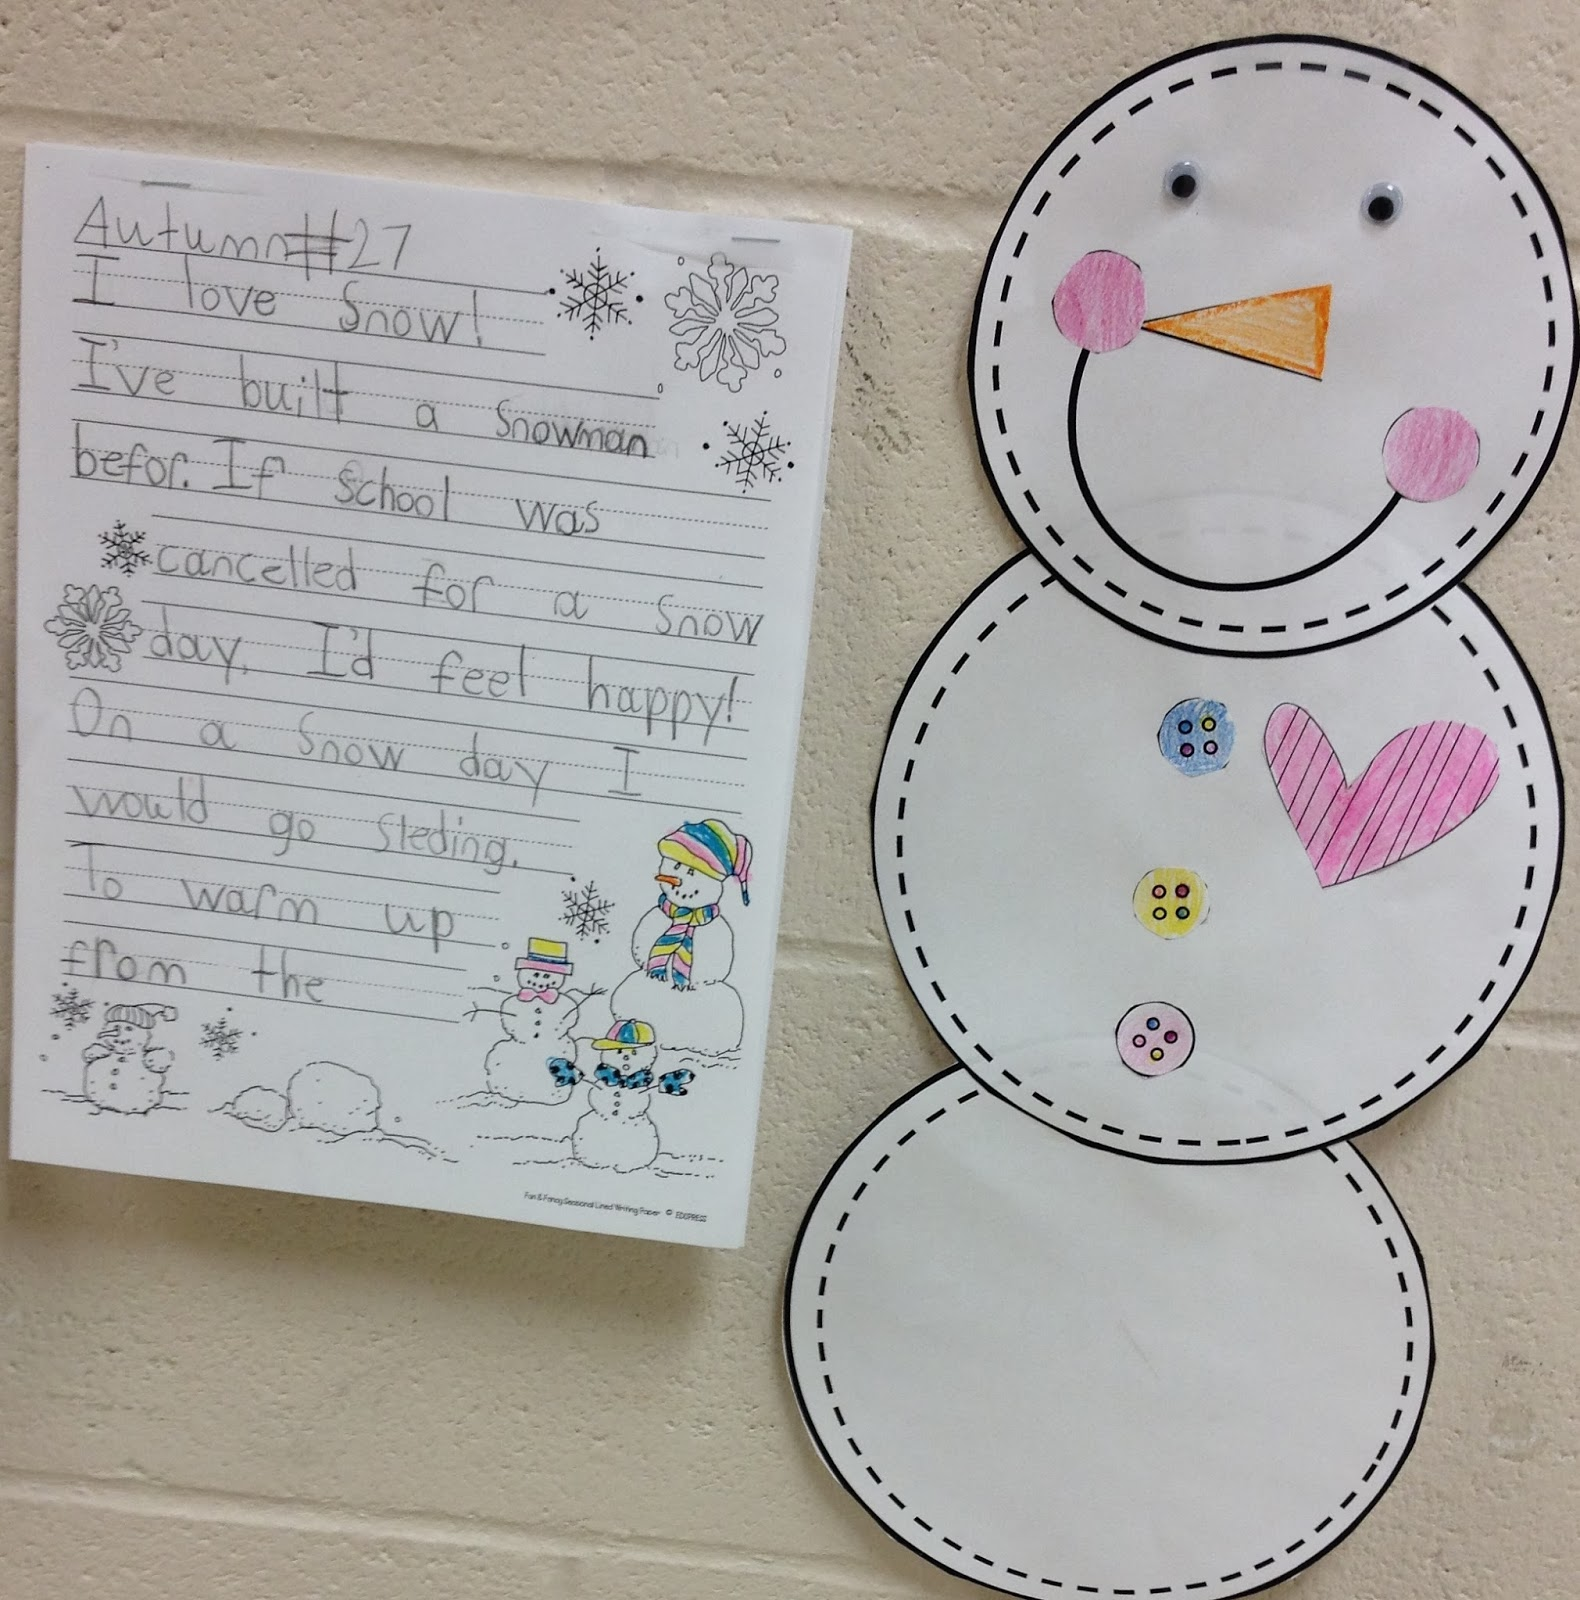 http://www.teacherspayteachers.com/Product/Snowman-Glyph-Craftivity-464337